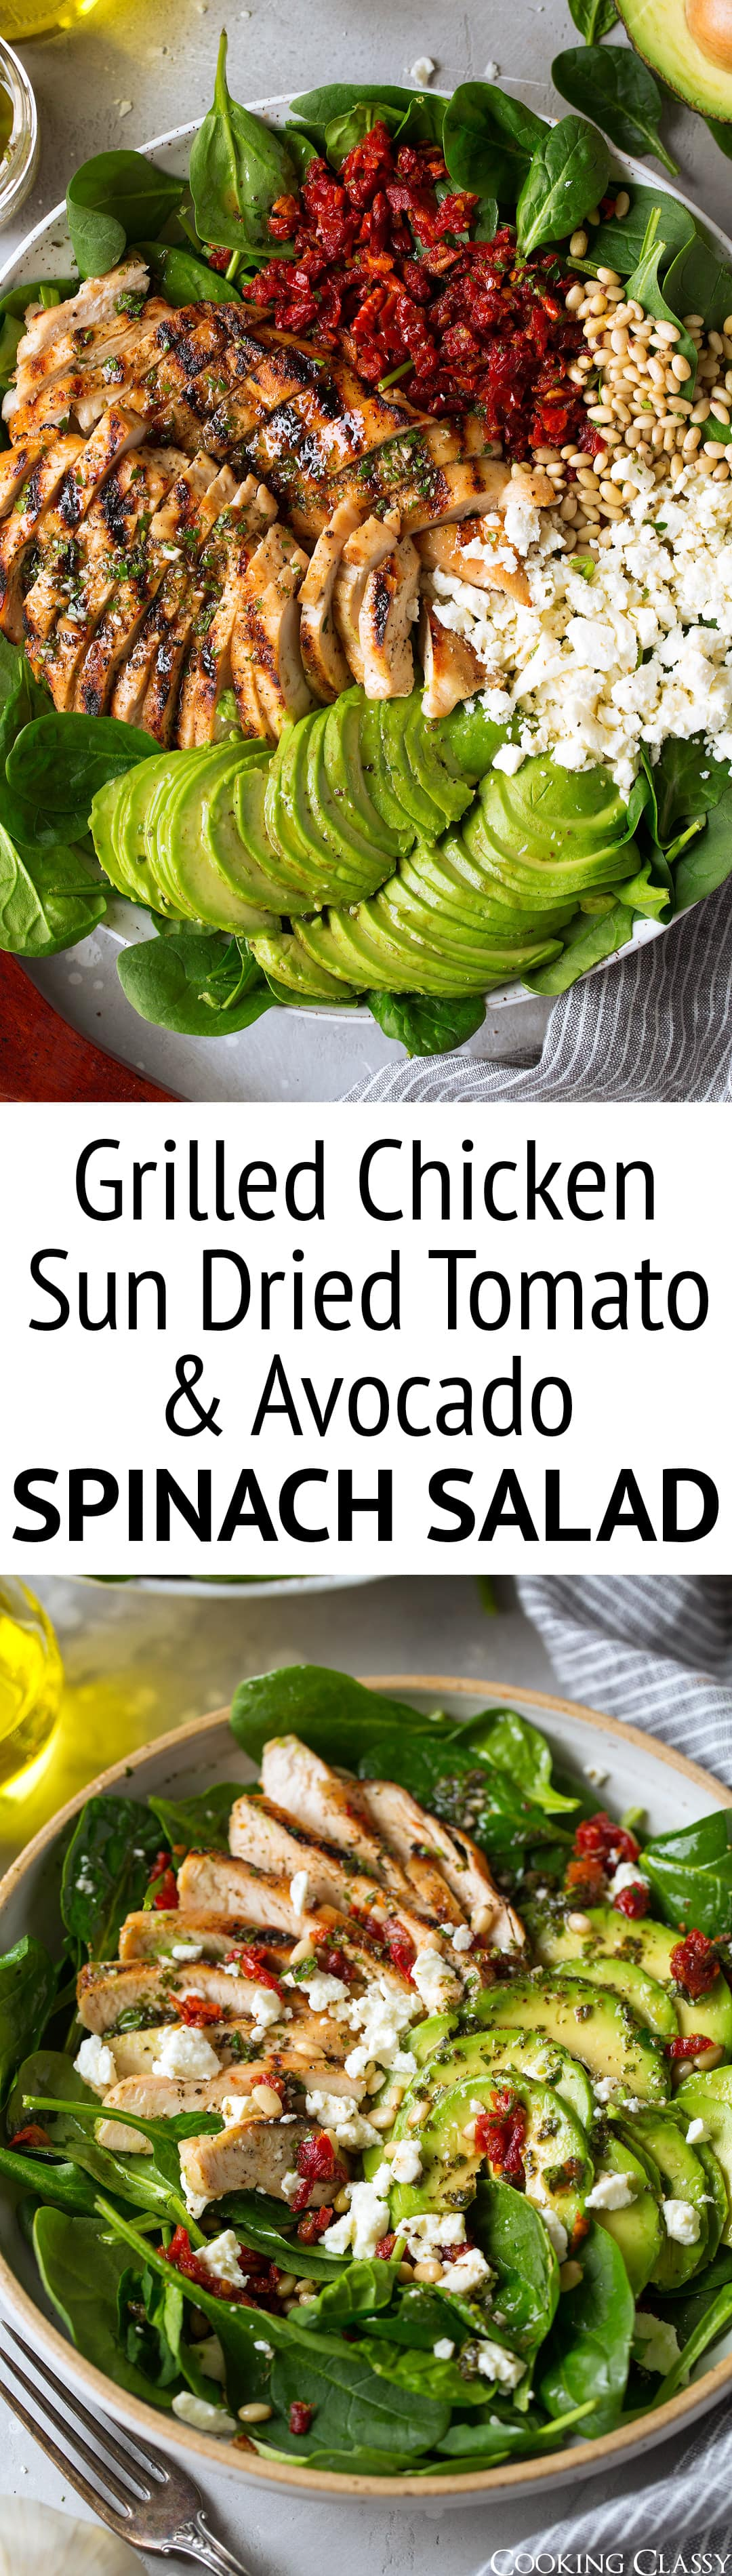 Grilled Chicken Sun Dried Tomato and Avocado Spinach Salad - This is such a flavorful and satisfying salad! It's layered with so much goodness and the way the flavors compliment each other here is spot on delicious! A recipe you'll want to use again and again. #salad #chickensalad #chicken #sundriedtomato #avocado #spinchsalad #dinner #recipe #healthy